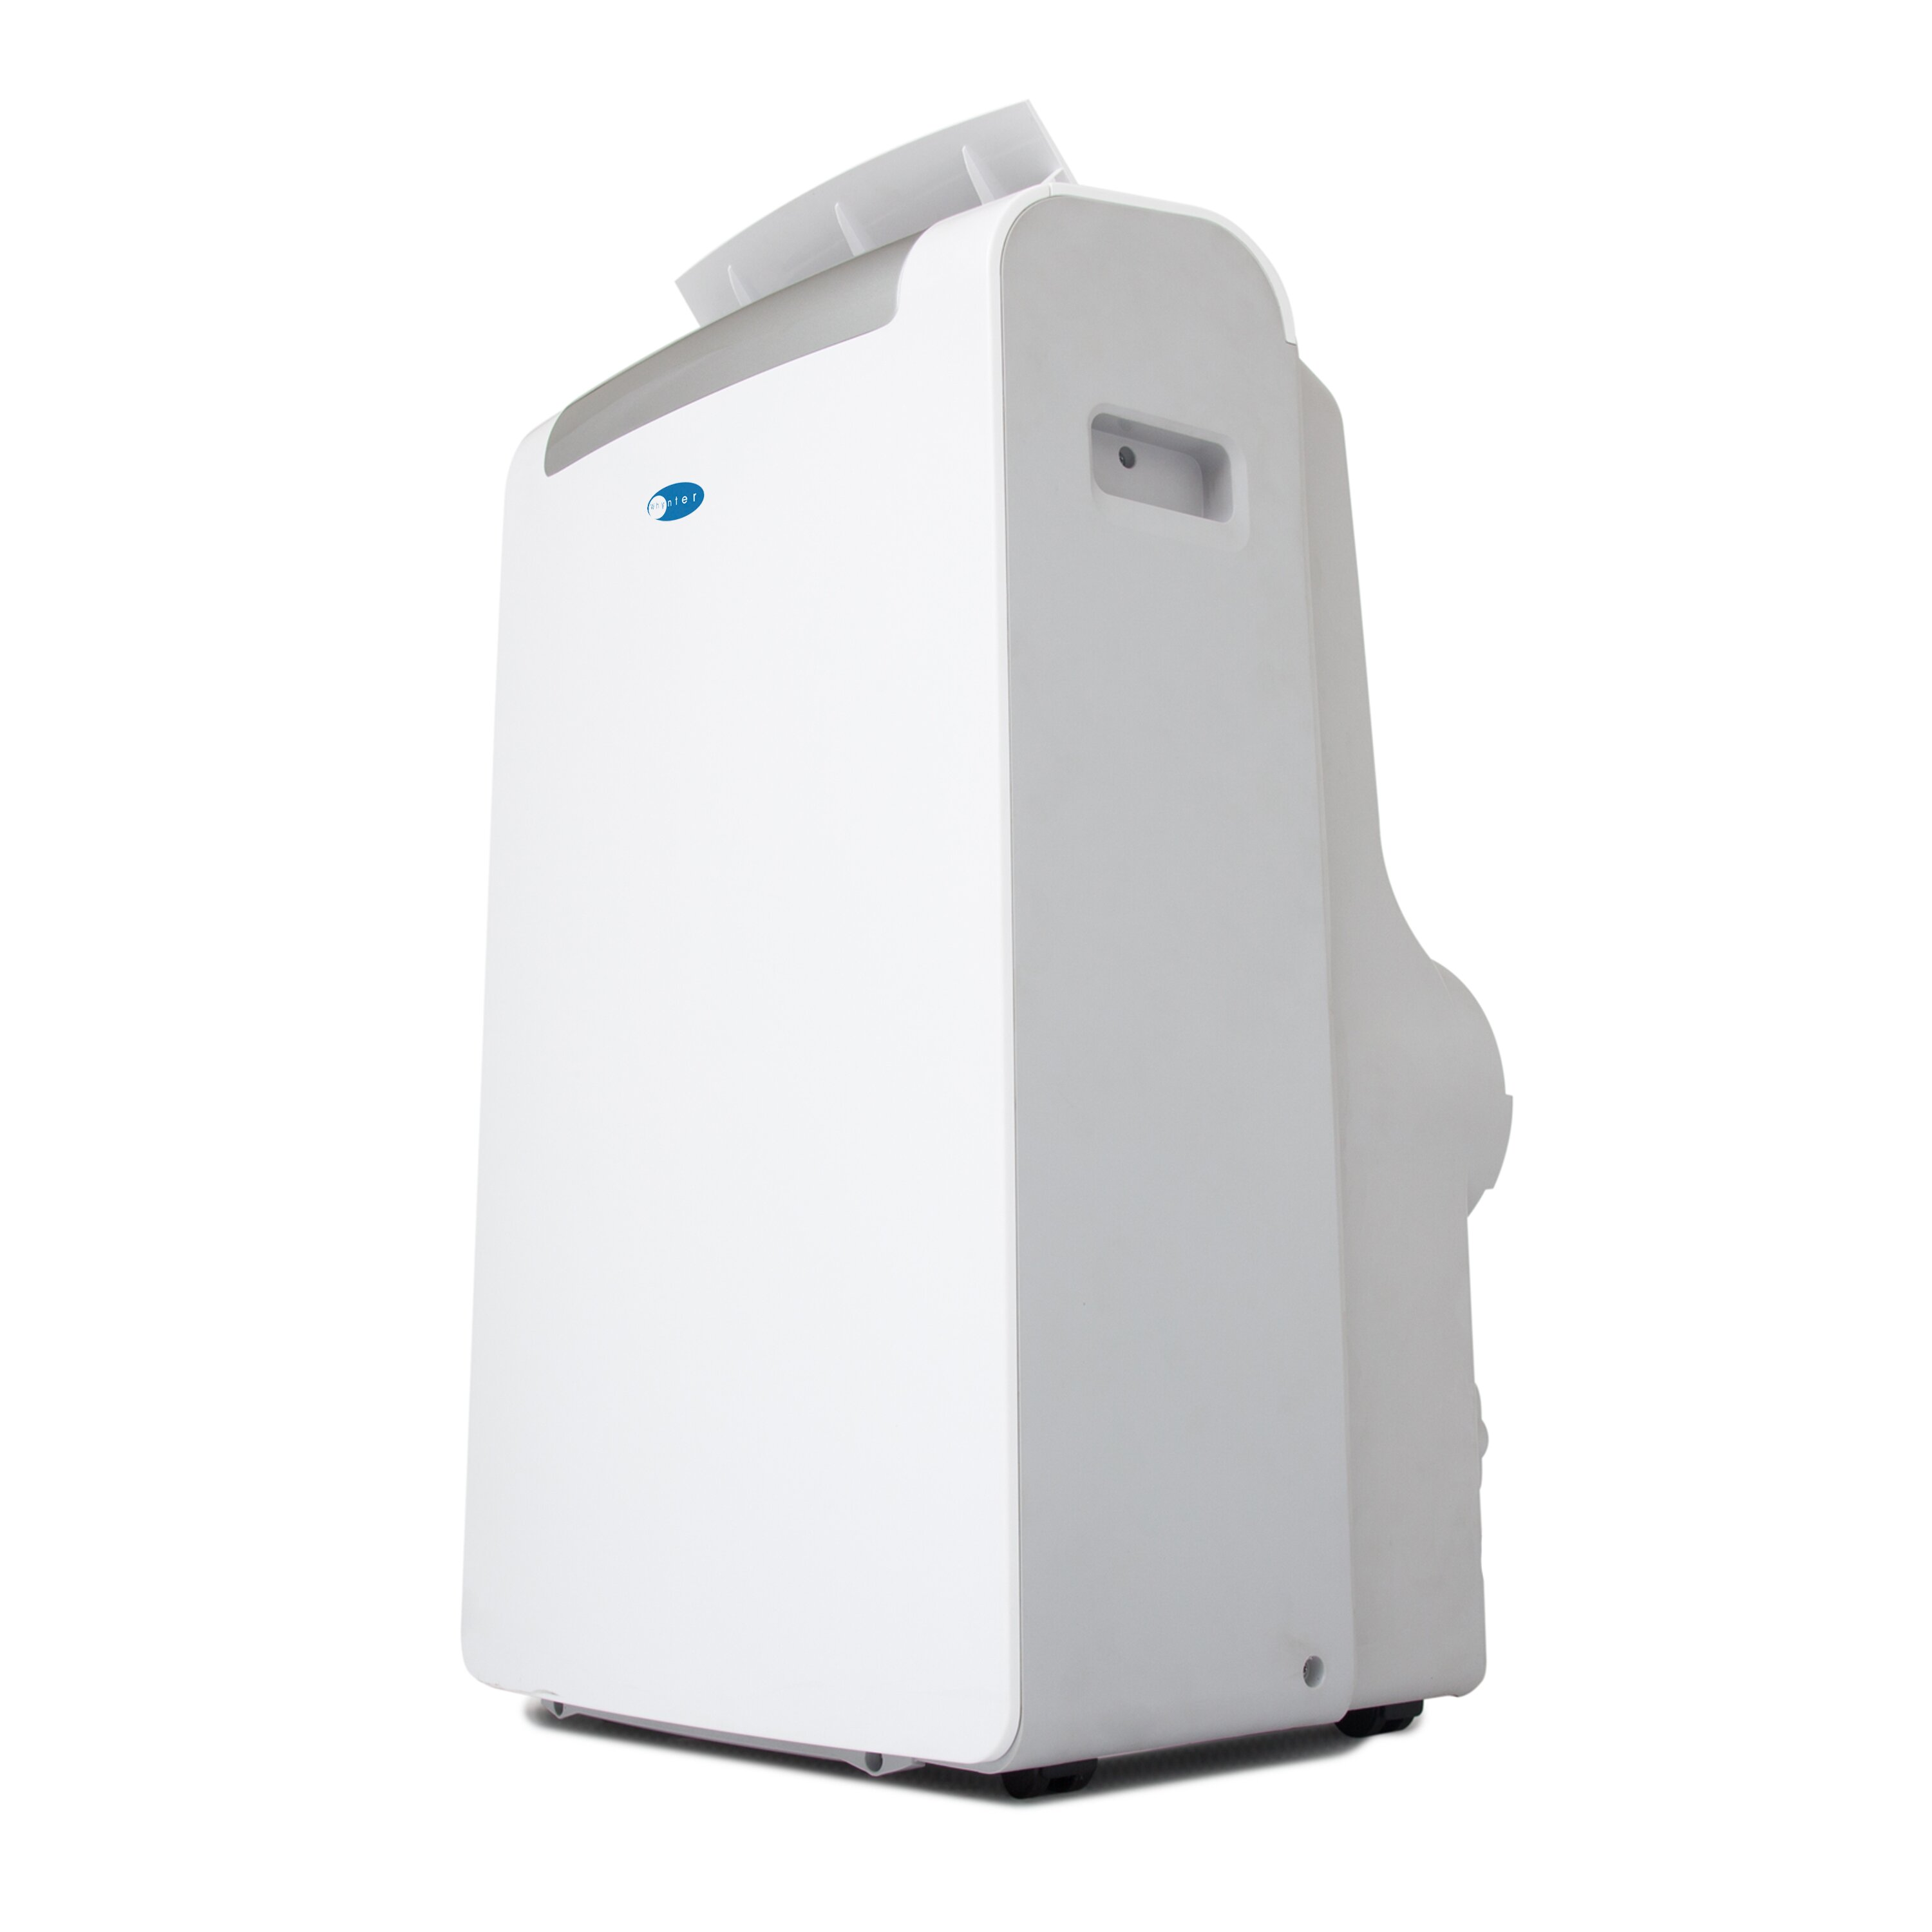 #2277AA Whynter 14000 BTU Portable Air Conditioner & Reviews Wayfair Most Recent 13510 Portable Air Conditioner Ratings image with 3000x3000 px on helpvideos.info - Air Conditioners, Air Coolers and more